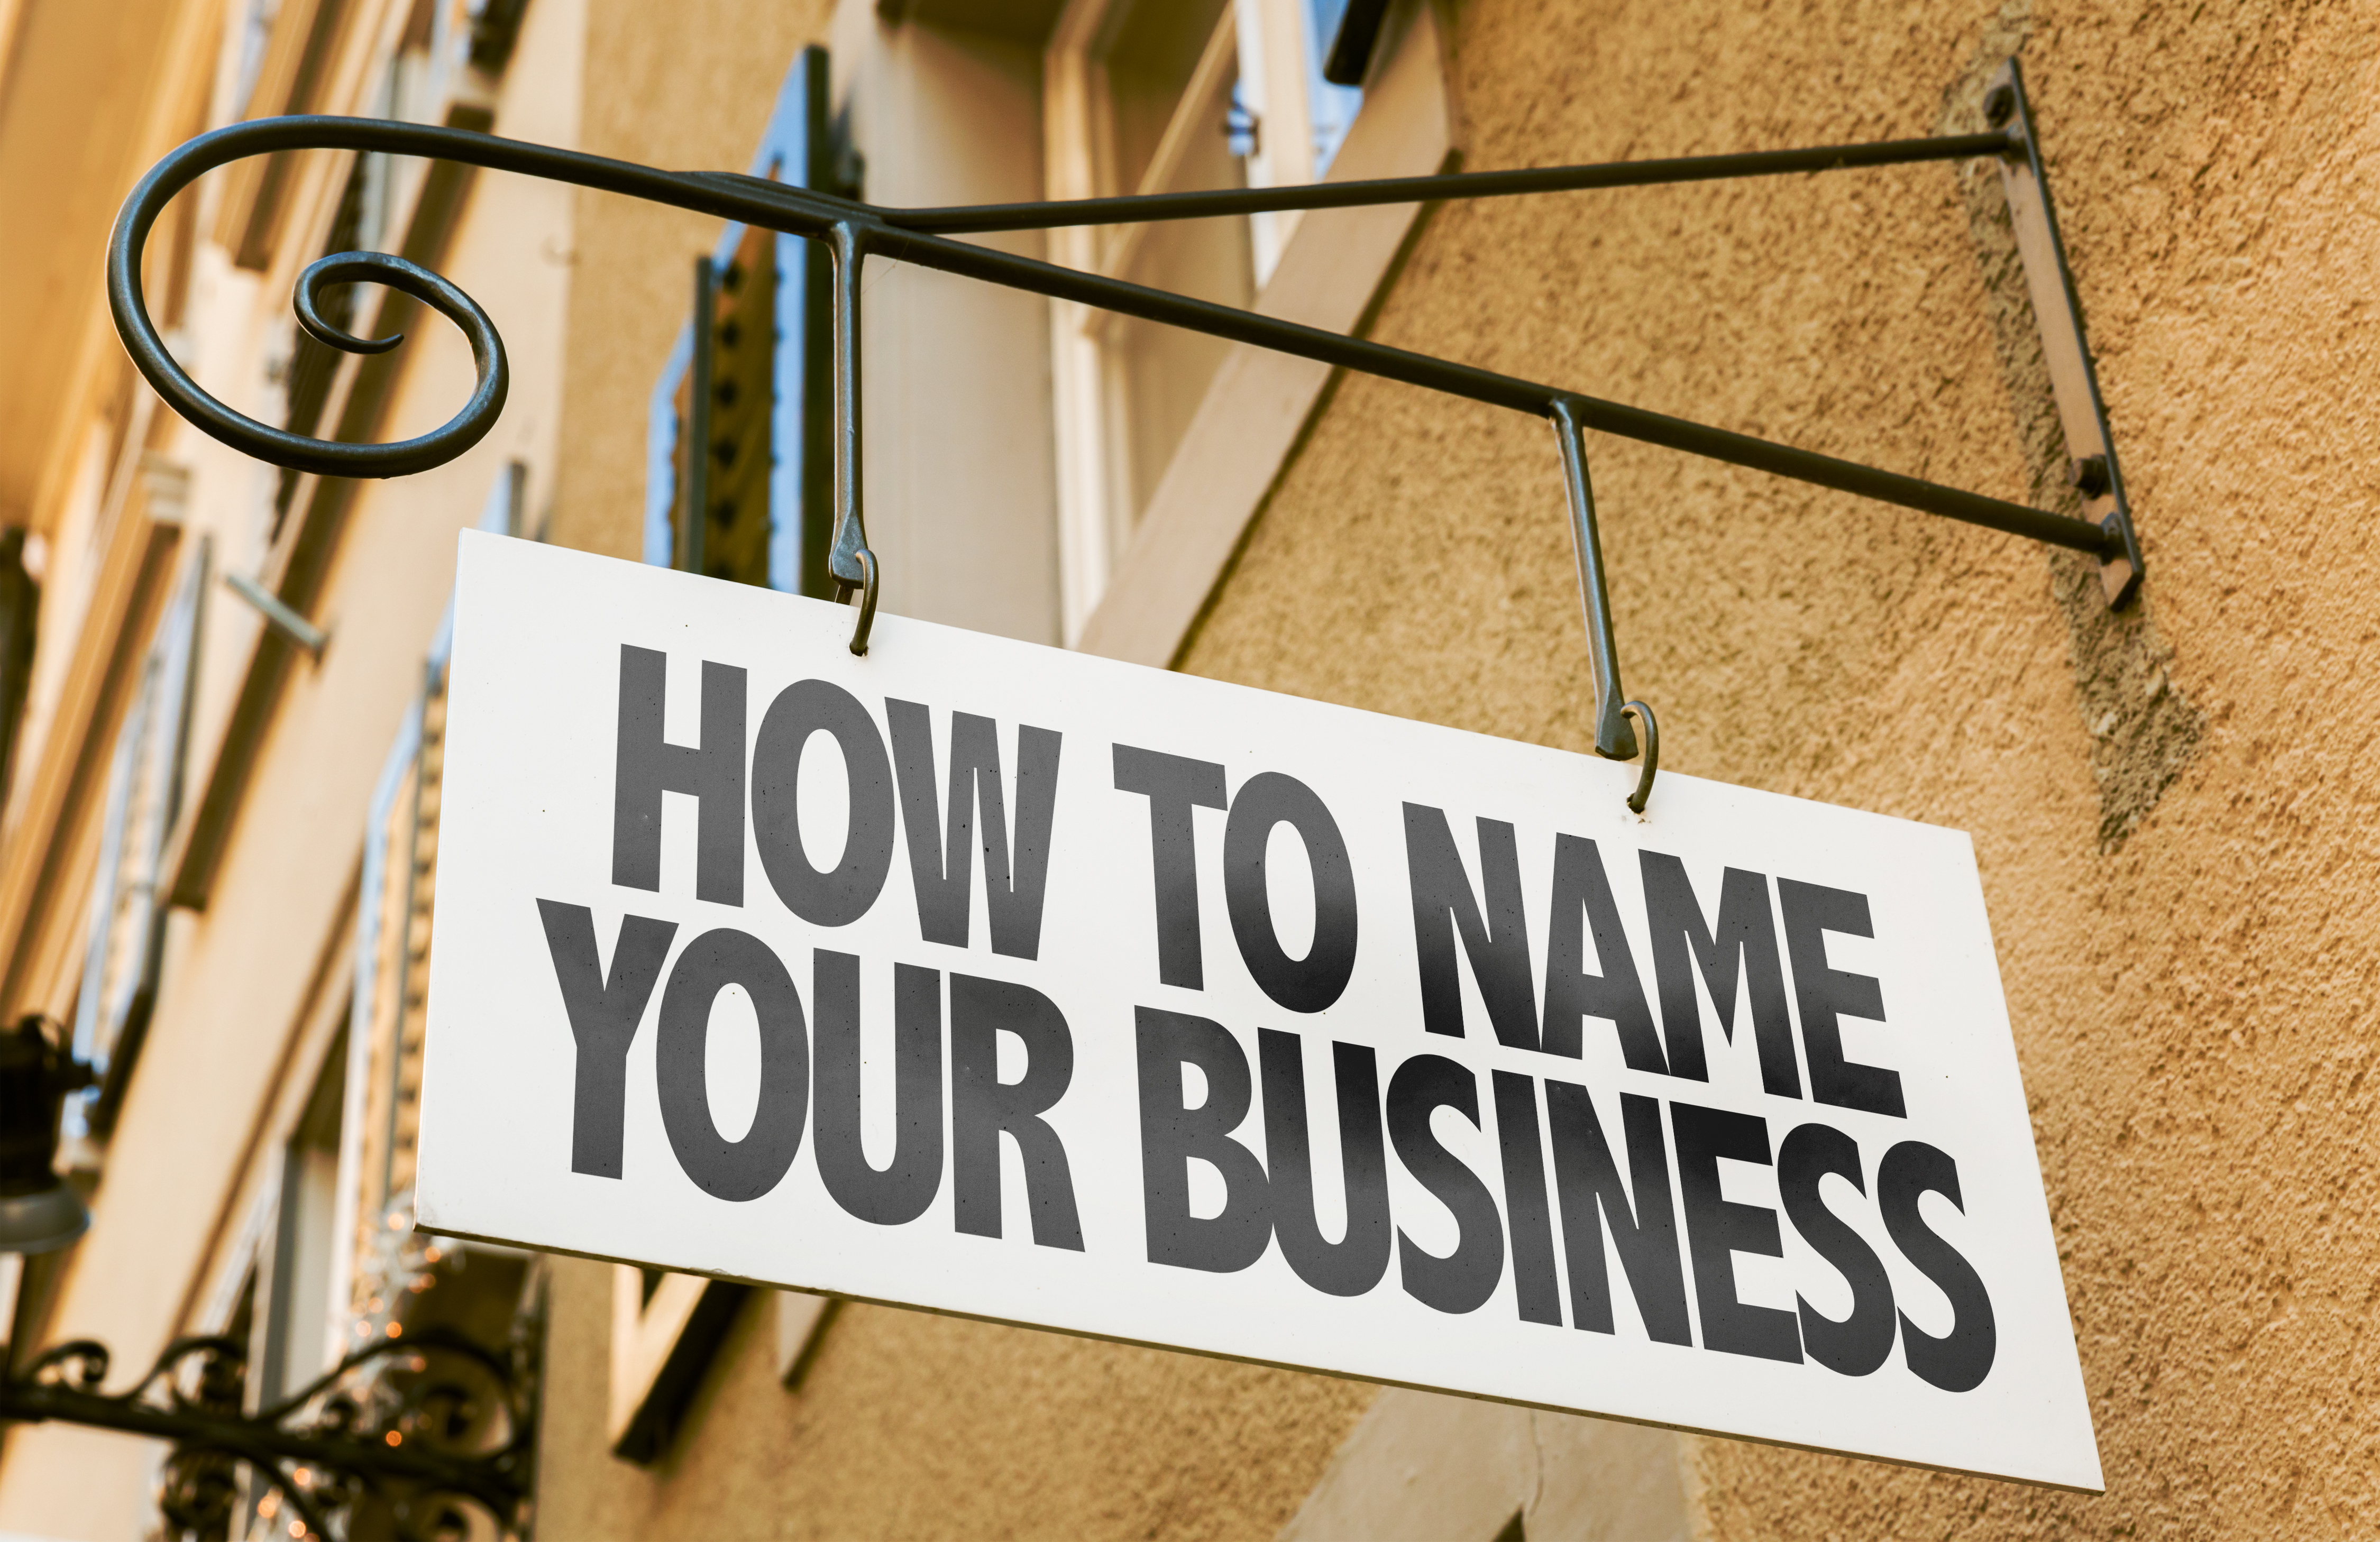 A Guide: Everything you need to know about registering a business name